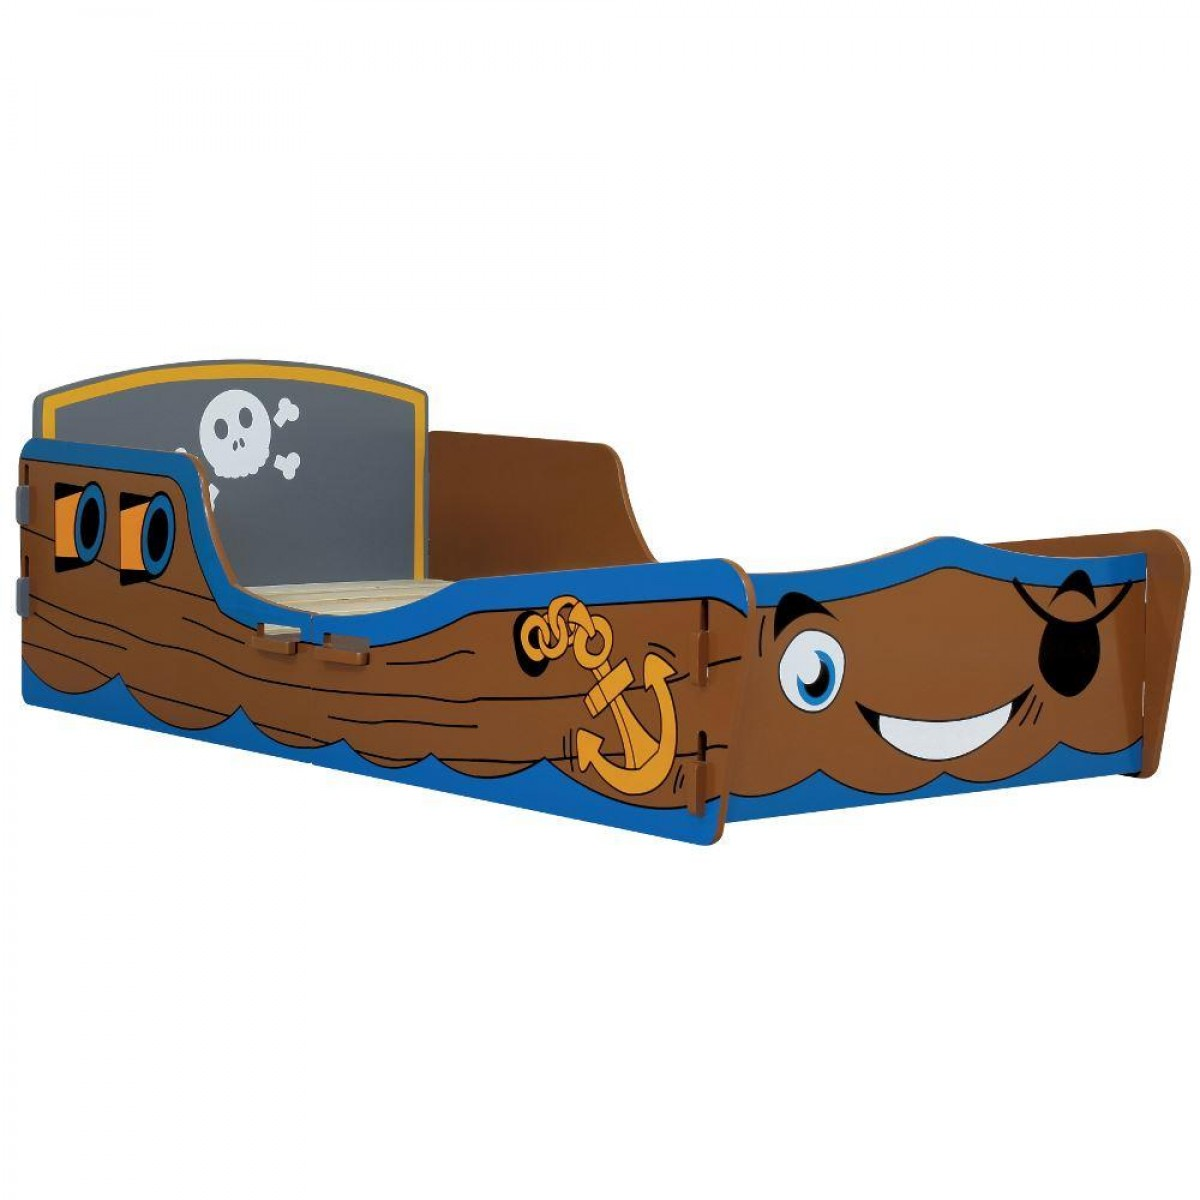 Pirate Ship Blue and Brown Childrens Toddler Bed